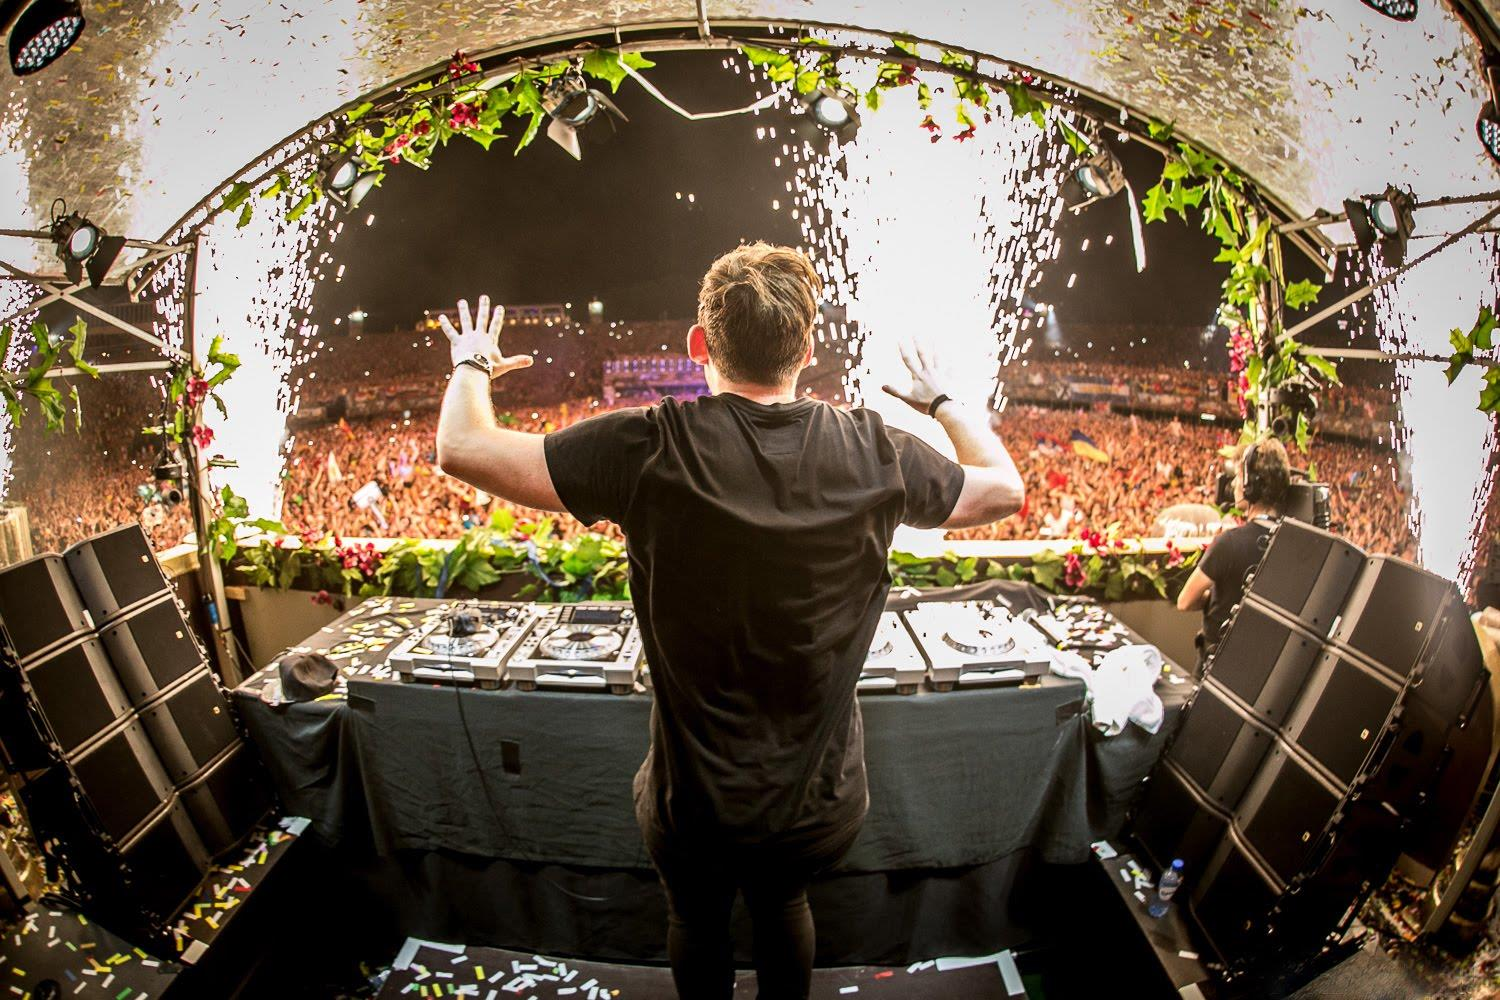 Hardwell Tomorrowland